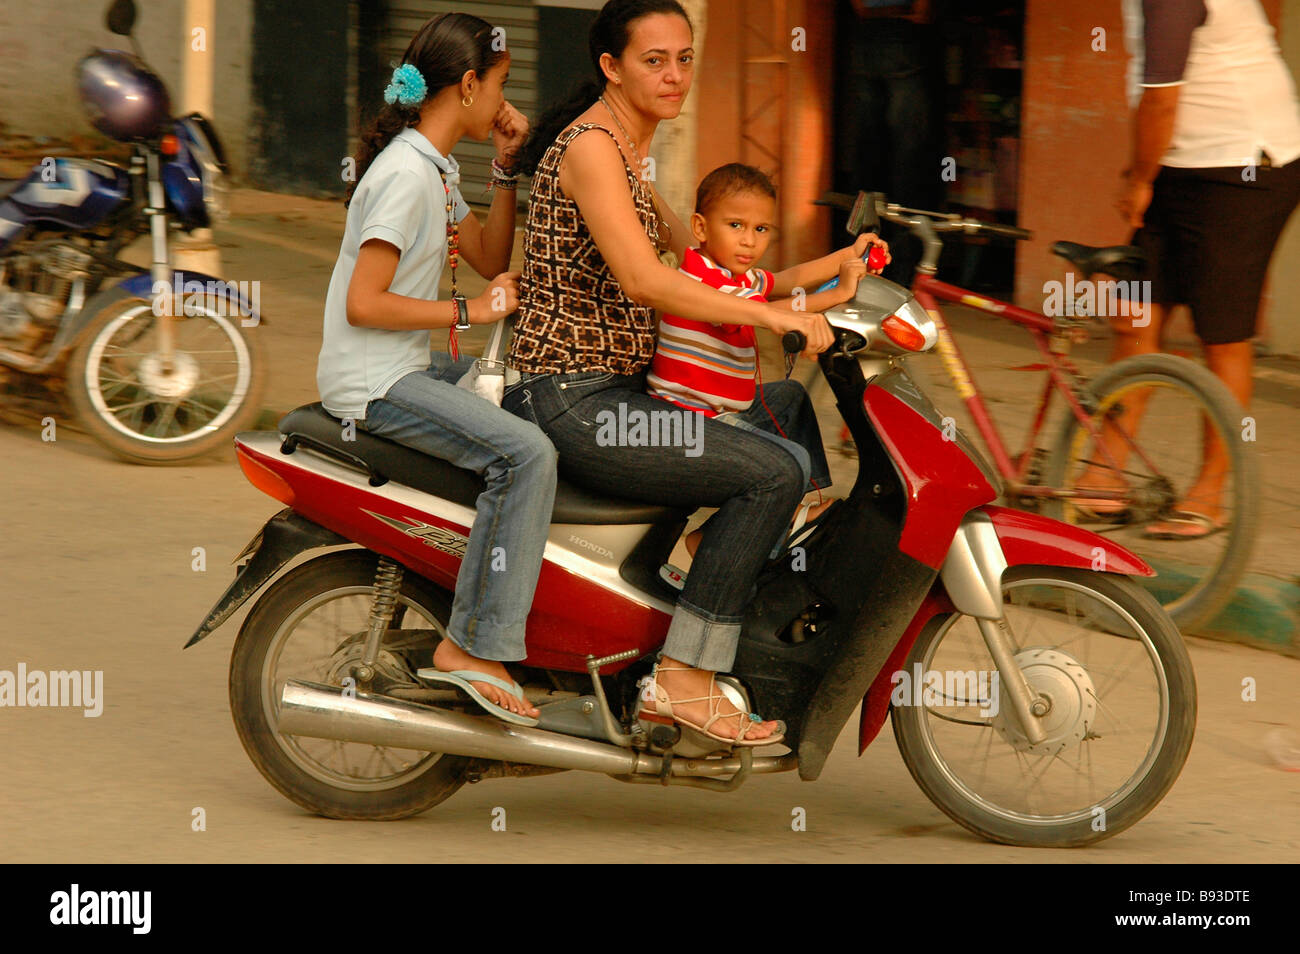 Moped scooter mother two child safety driving unsafely family colour metropolitan urban viajar outdoors transport - Stock Image